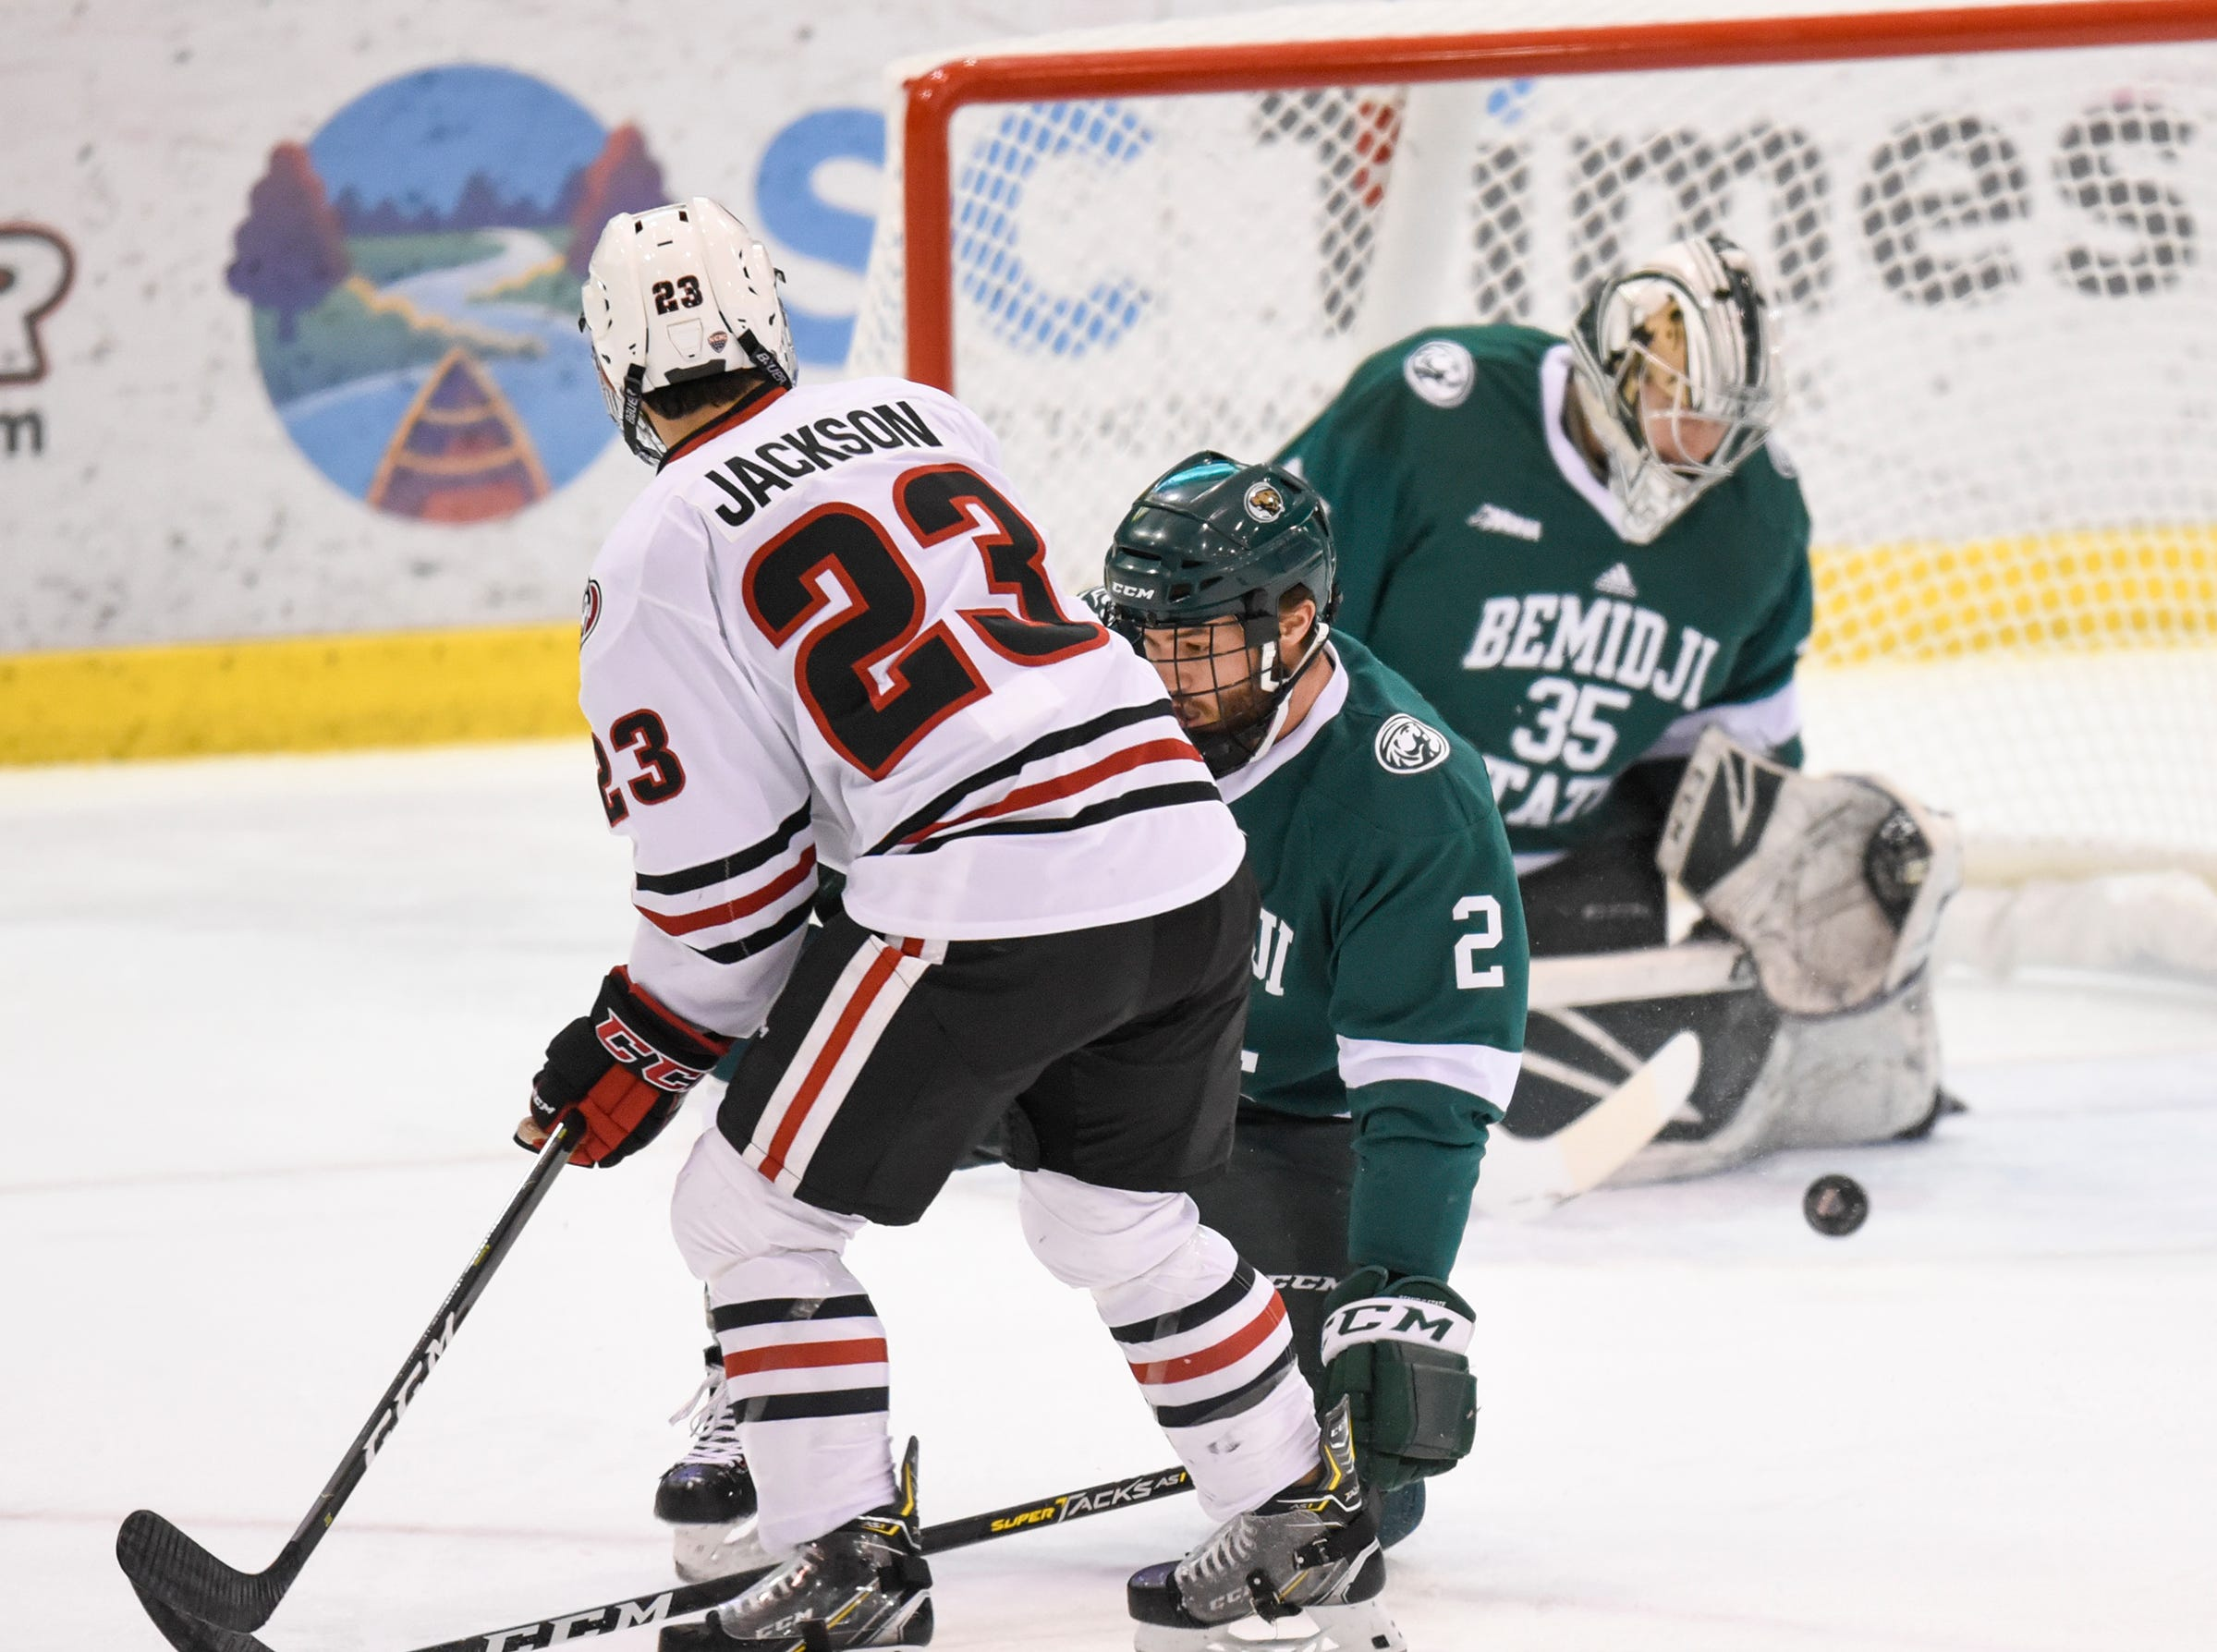 St. Cloud State's Robby Jackson takes a shot on goal during the first period of the Friday, Nov. 16, game against Bemidji State at the Herb Brooks National Hockey Center in St. Cloud.